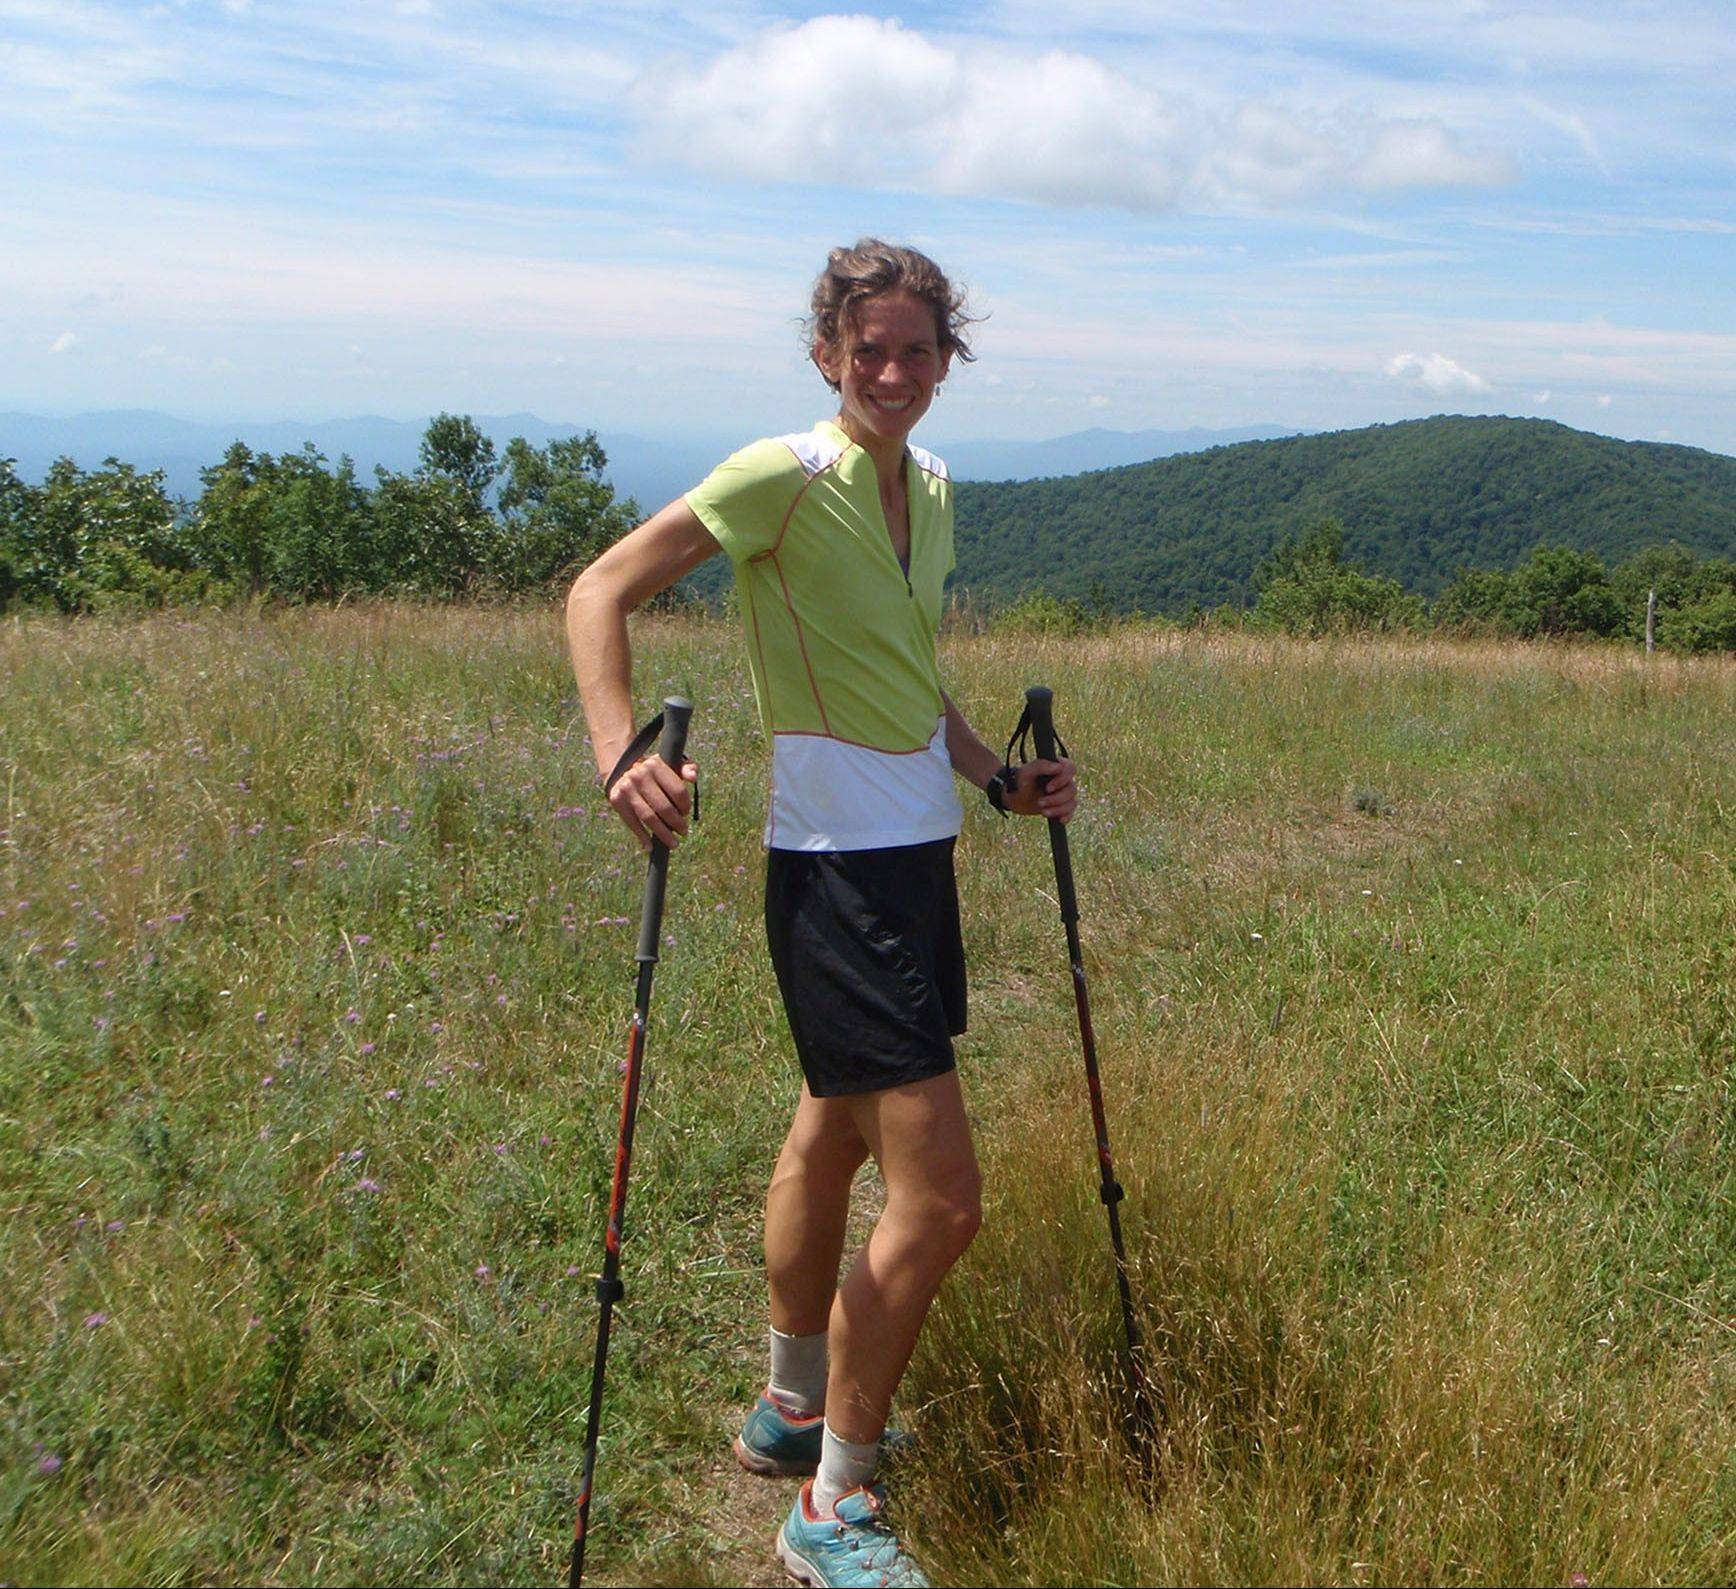 Jennifer Pharr Davis uses hiking poles to minimize the pressure on her joints. She hiked the Appalachian Trail in 46 days in 2011.